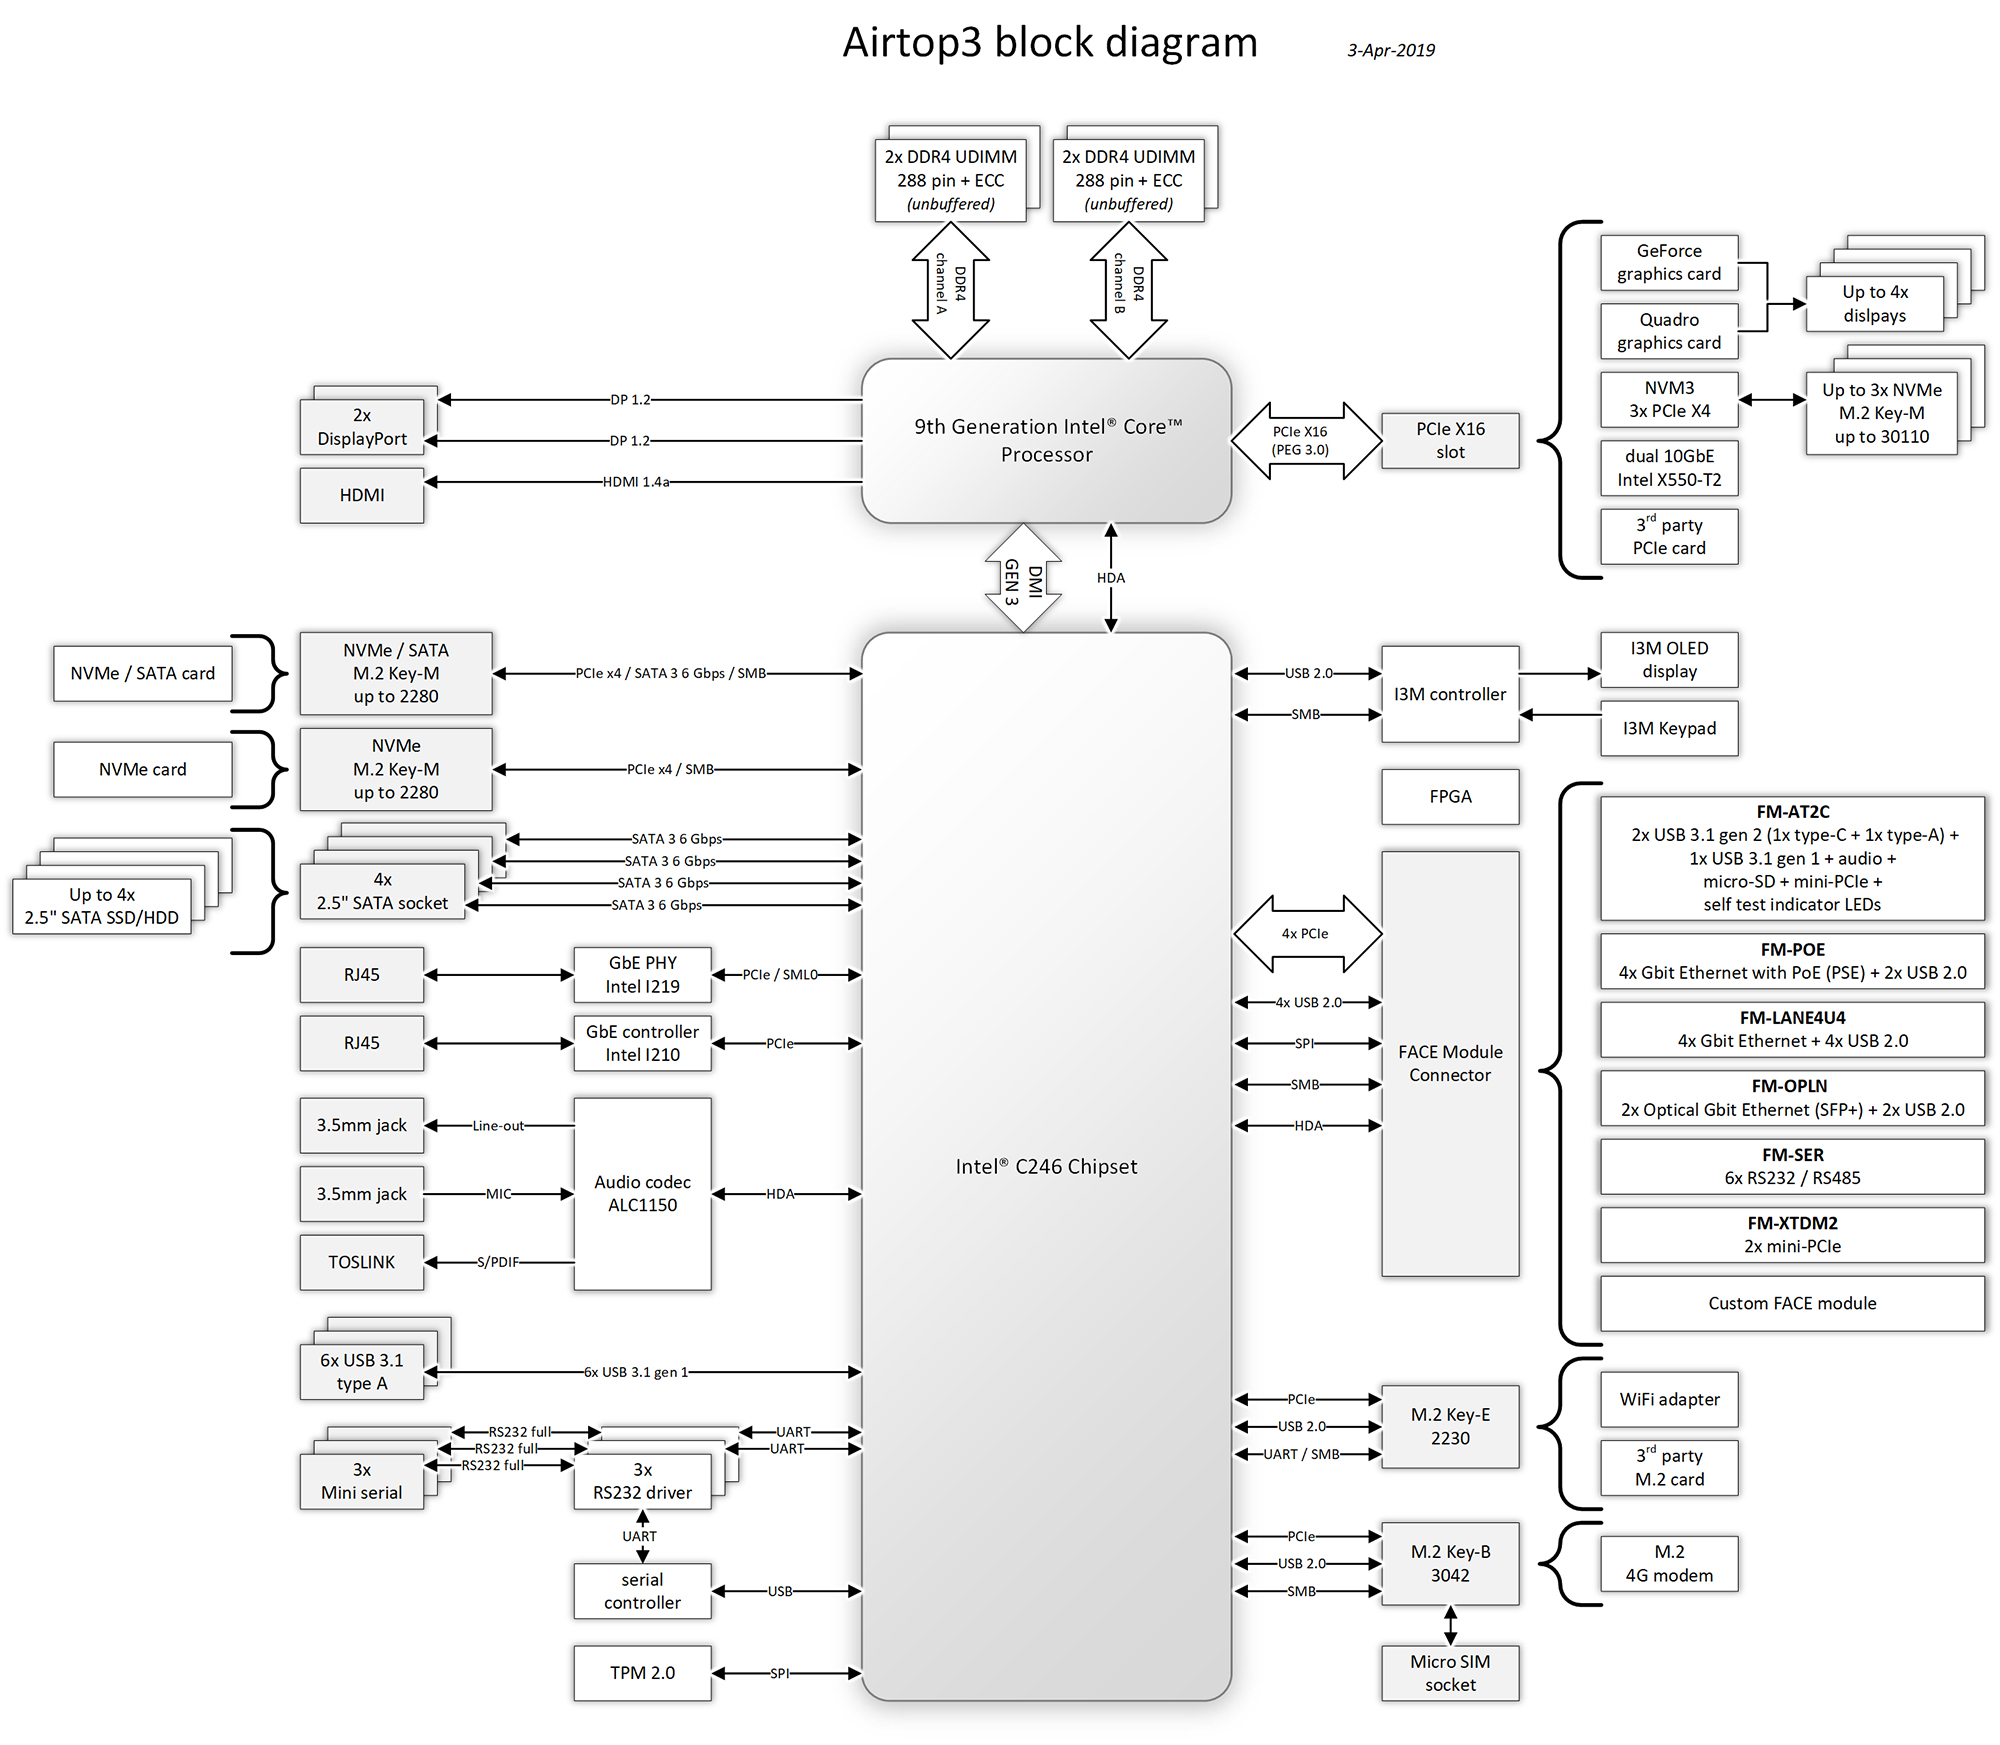 airtop3 block diagram